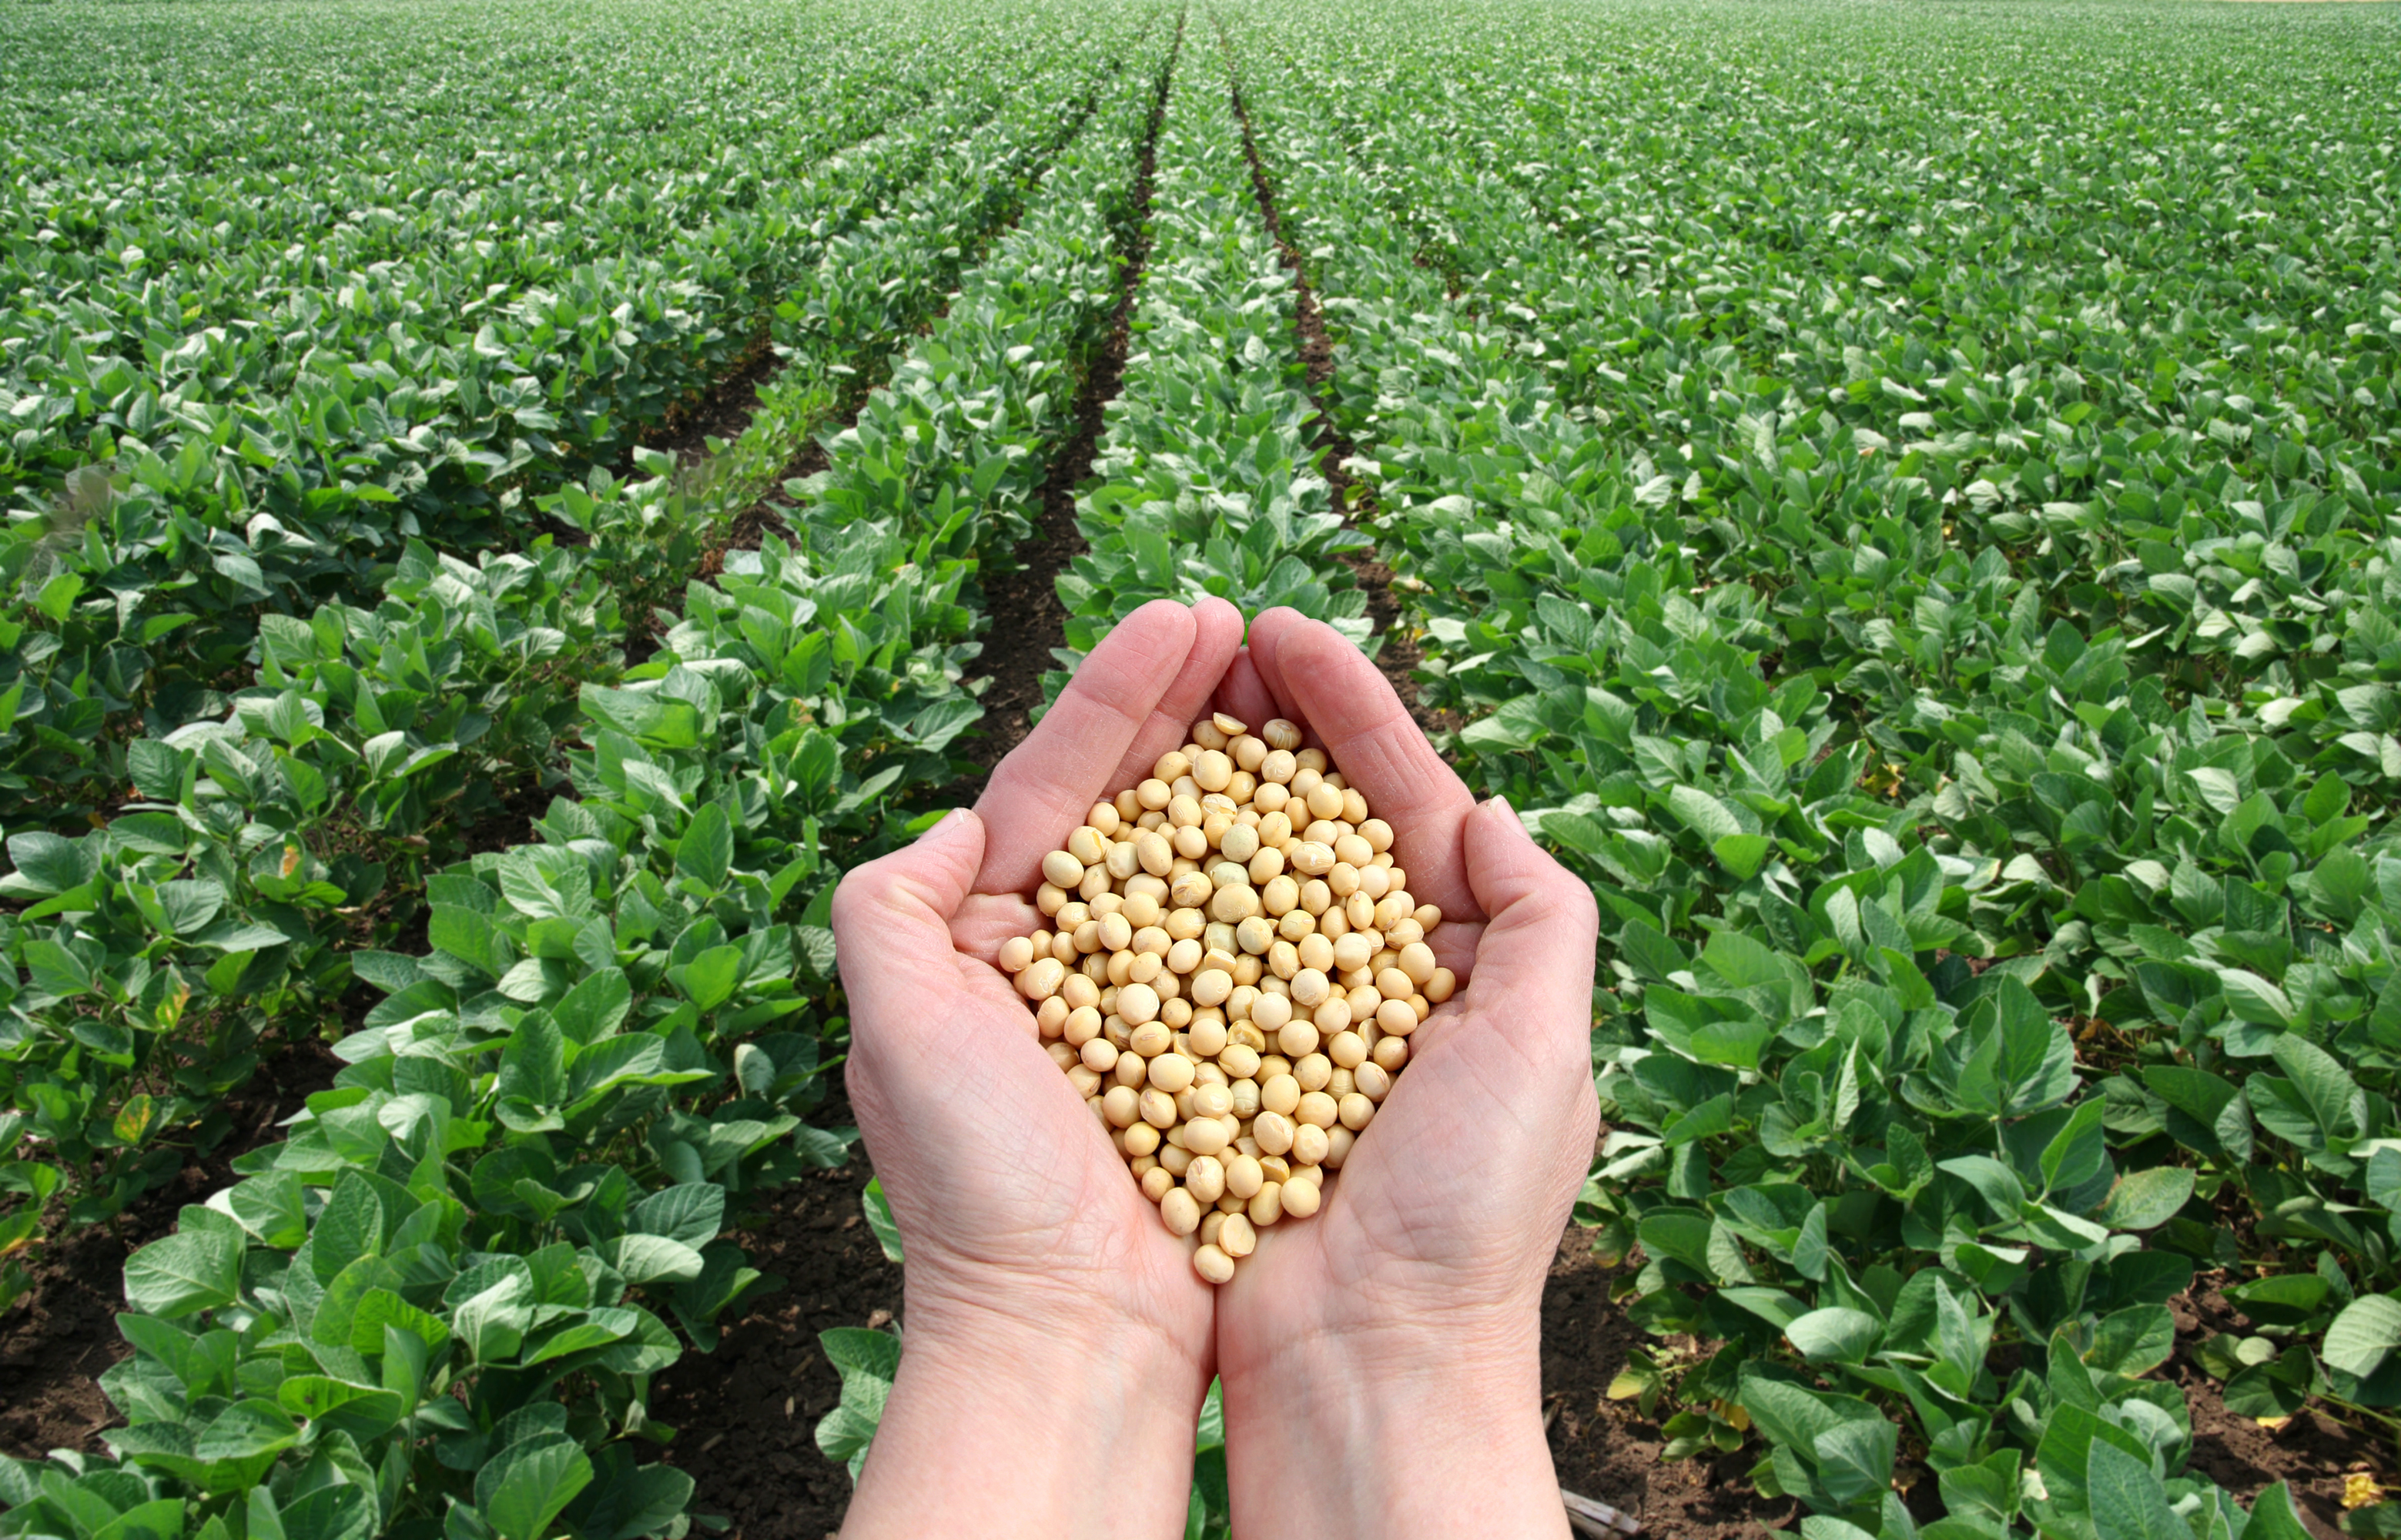 Human hand holding soybean with field in background